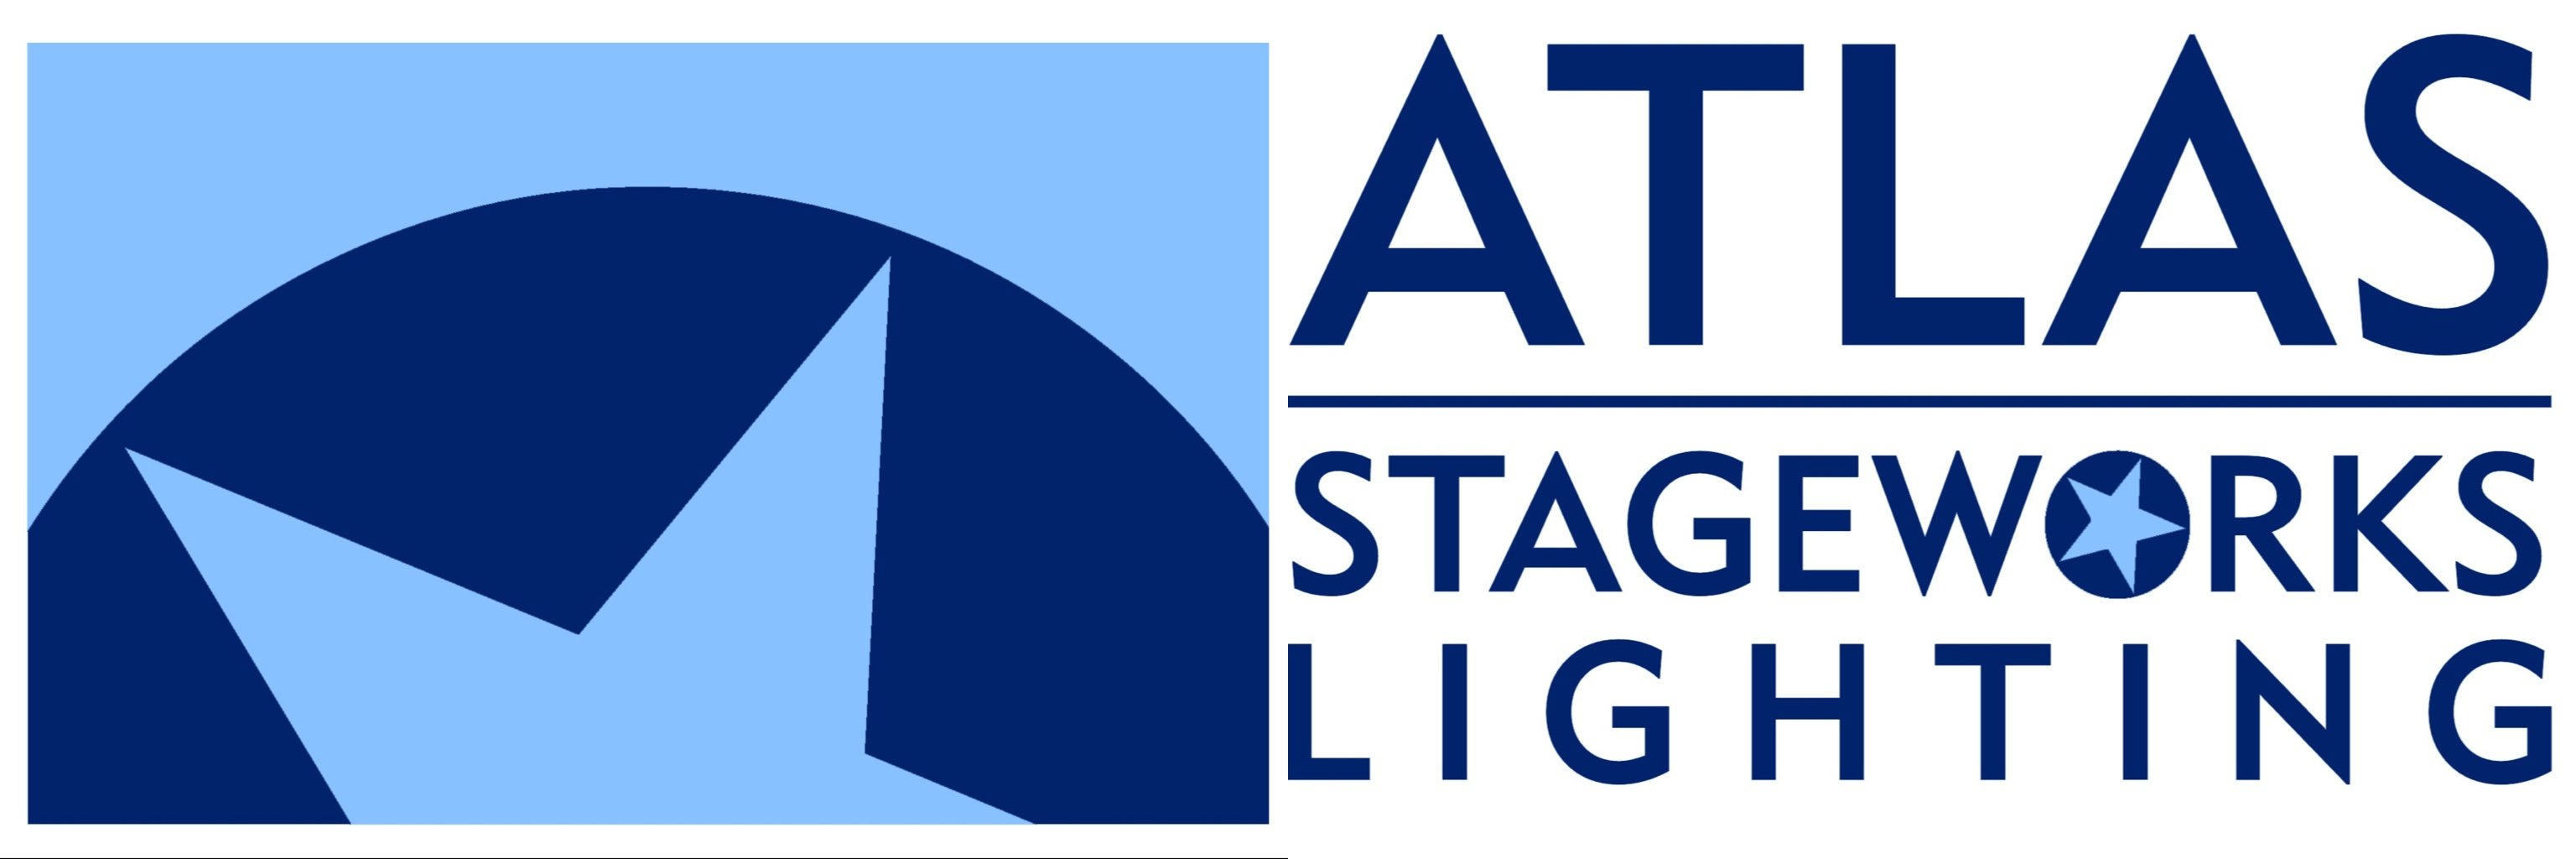 Atlas Stageworks Lighting